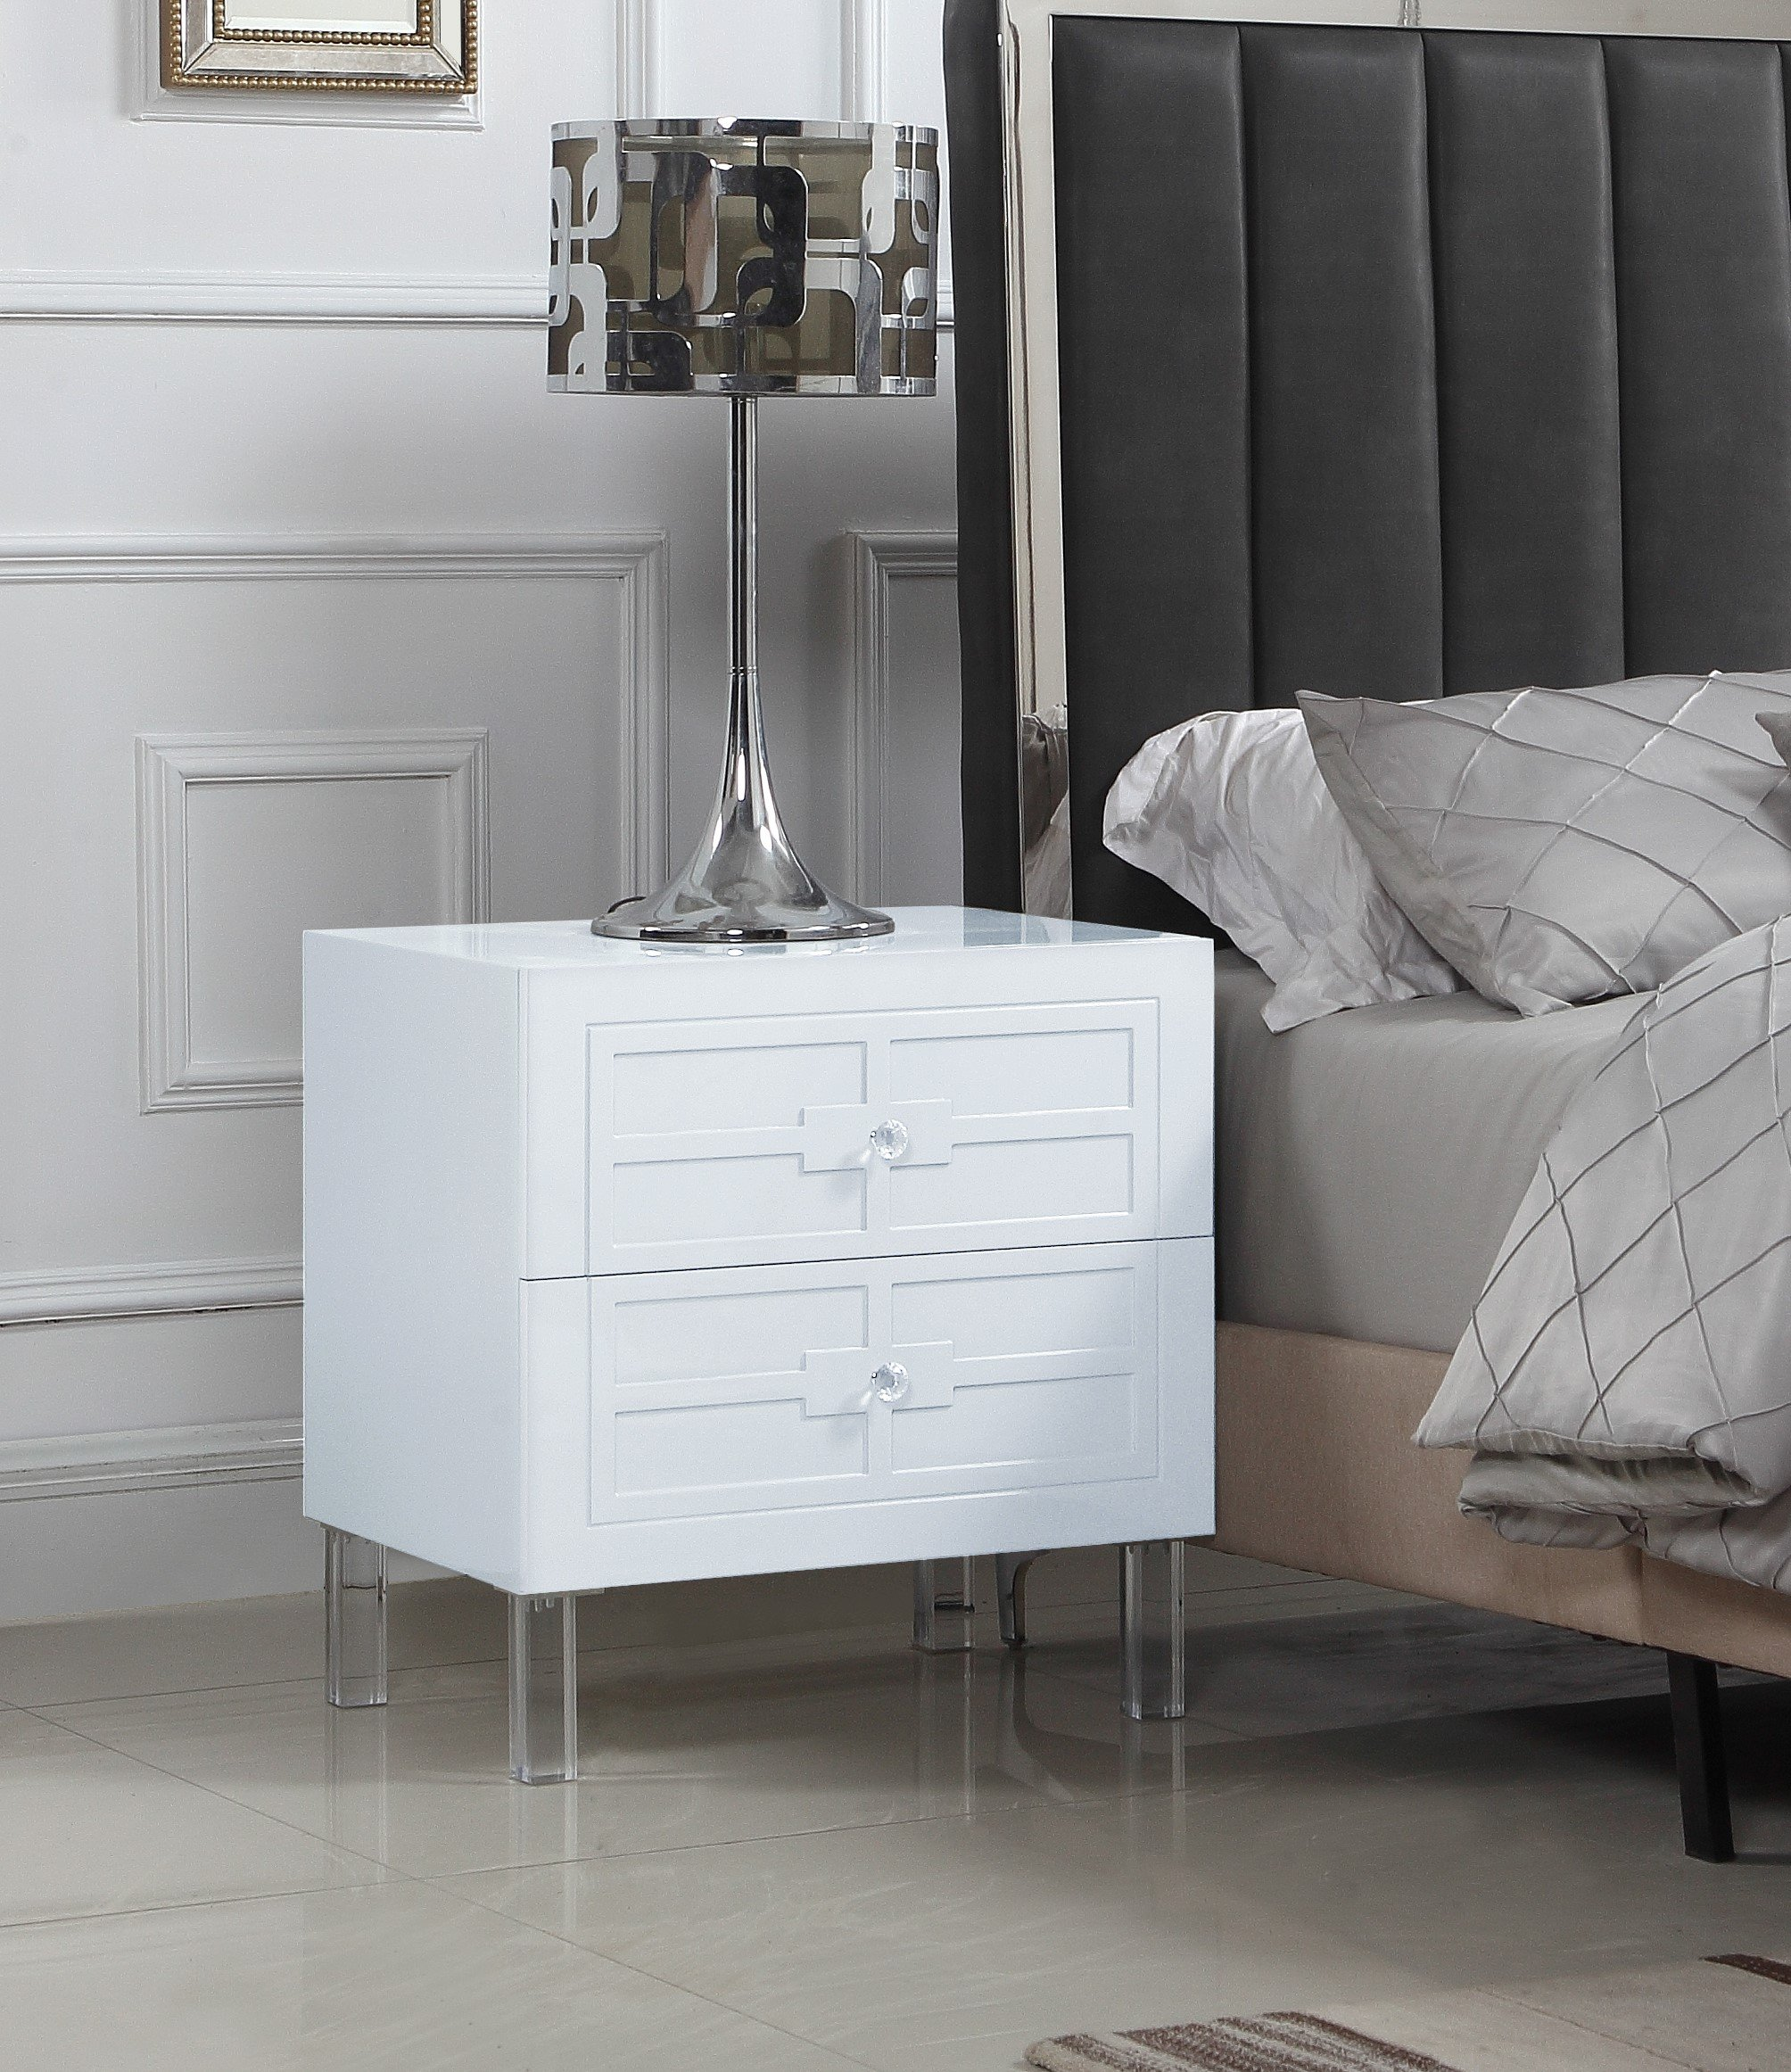 Iconic Home Naples Nightstand Side Table with 2 Self Closing Drawers Lacquer Acrylic Knob Legs, Modern Contemporary, White by Iconic Home